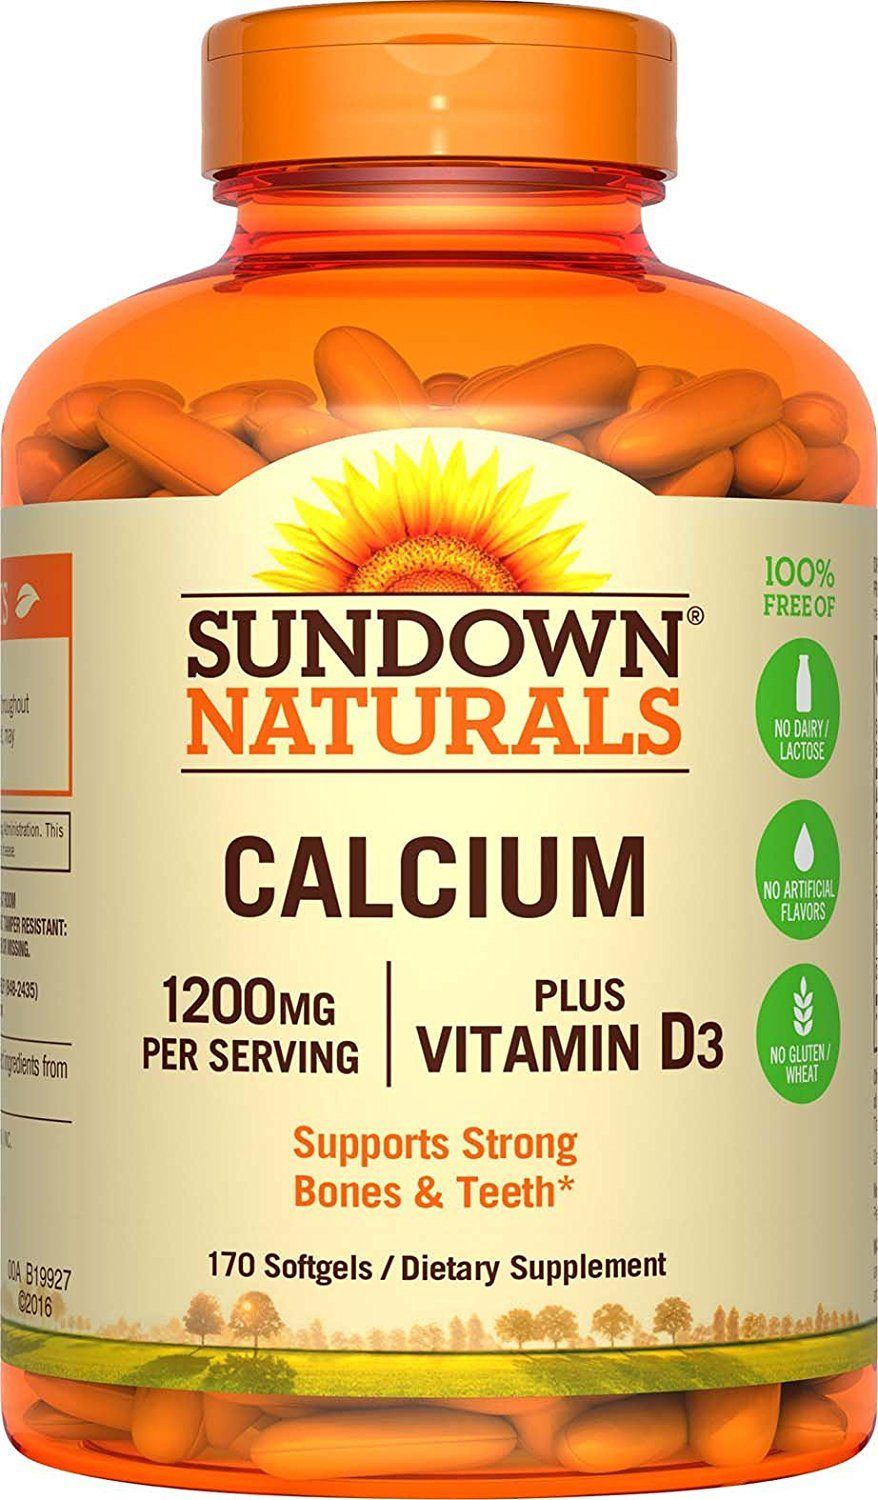 Sundown Naturals Calcium 1200 Plus Vitamin D3 1000 IU, 170